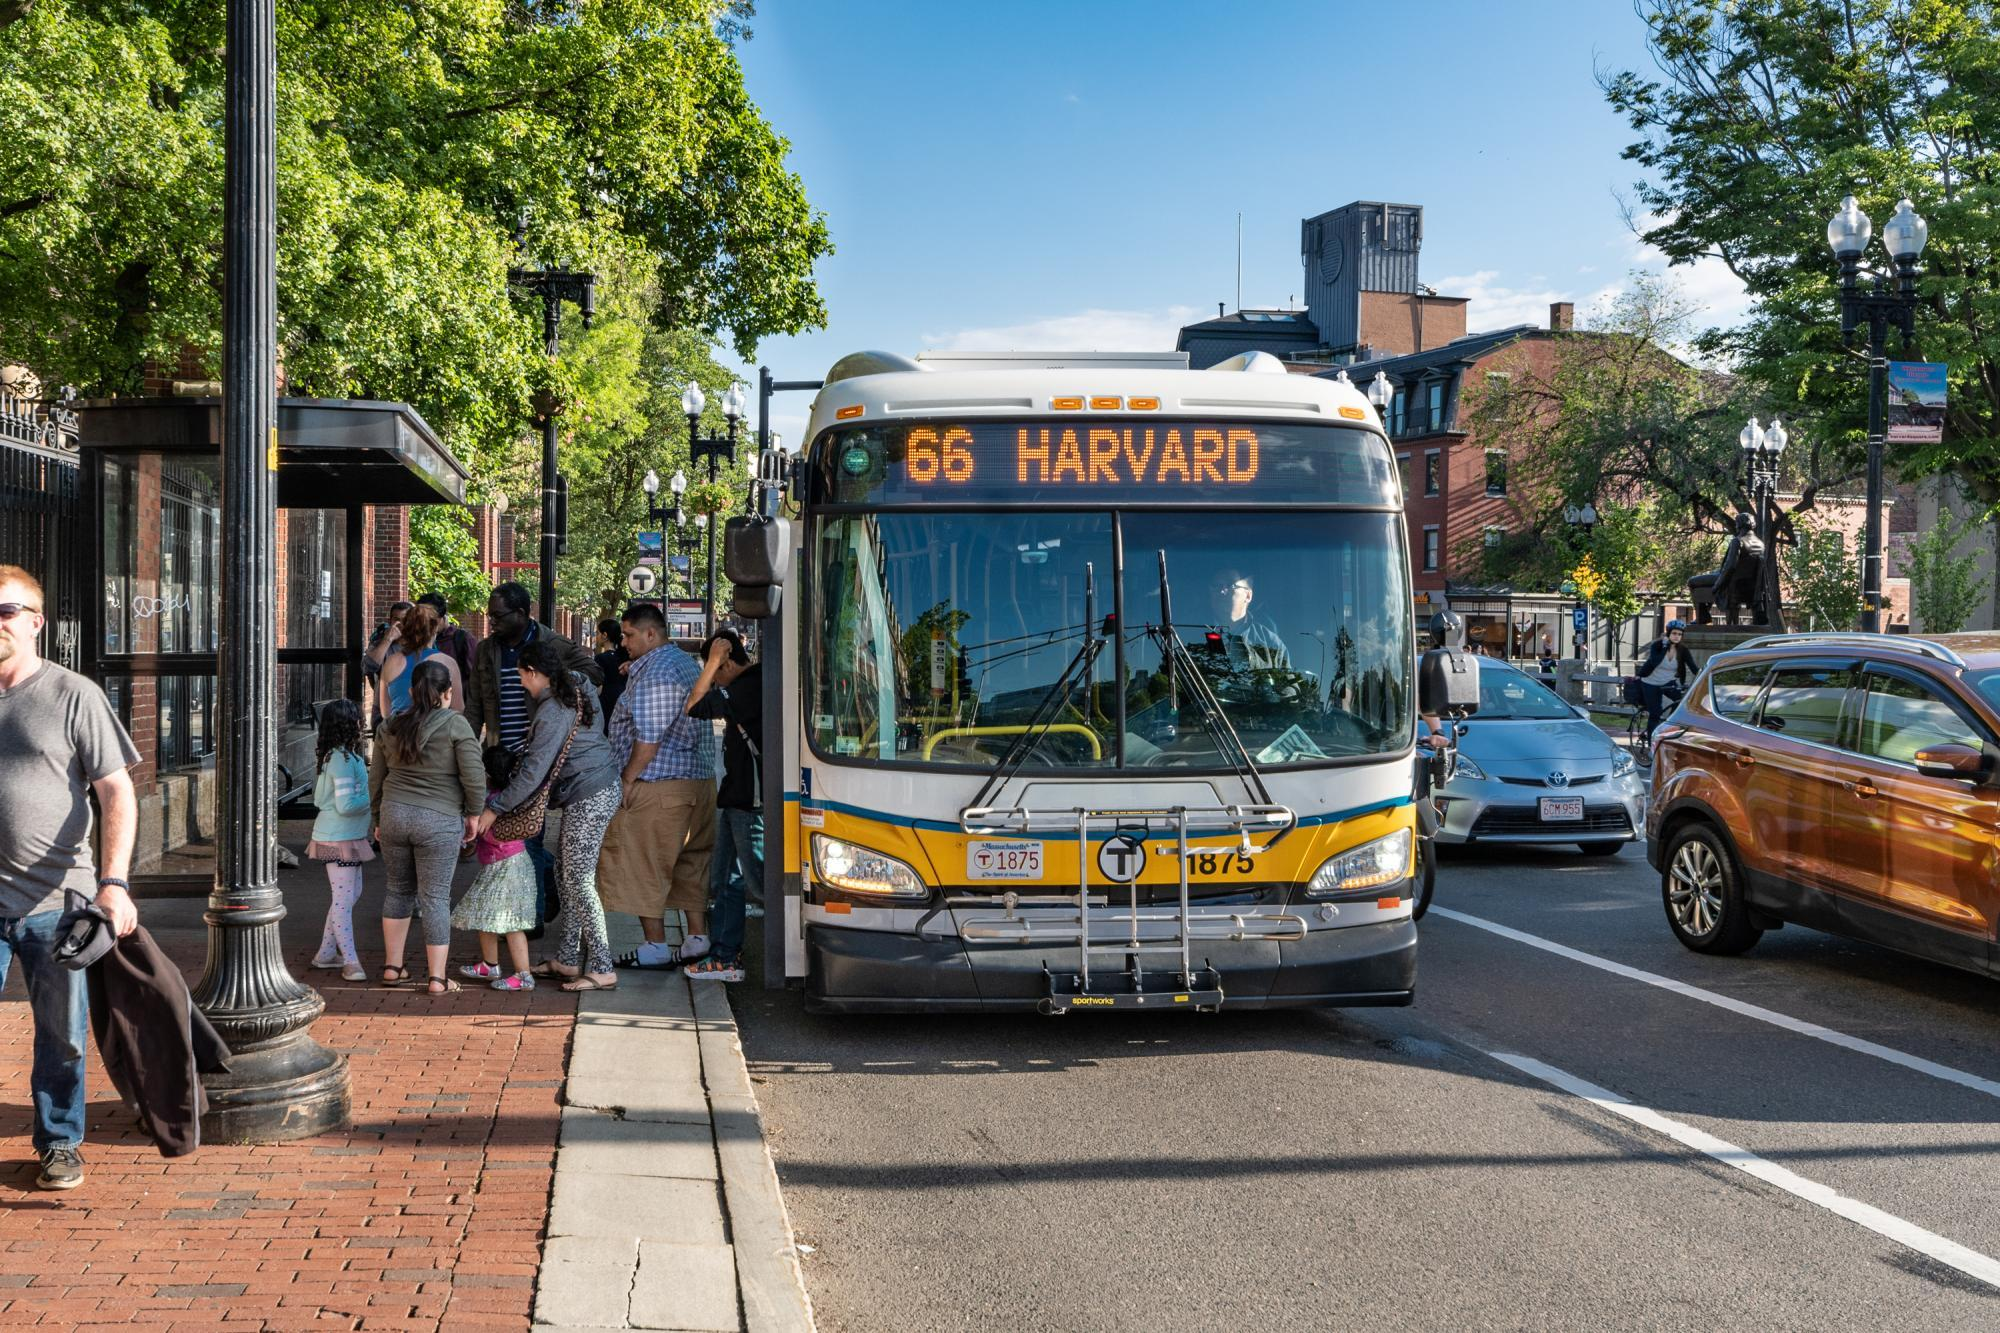 Riders exit a Route 66 bus in Harvard Square